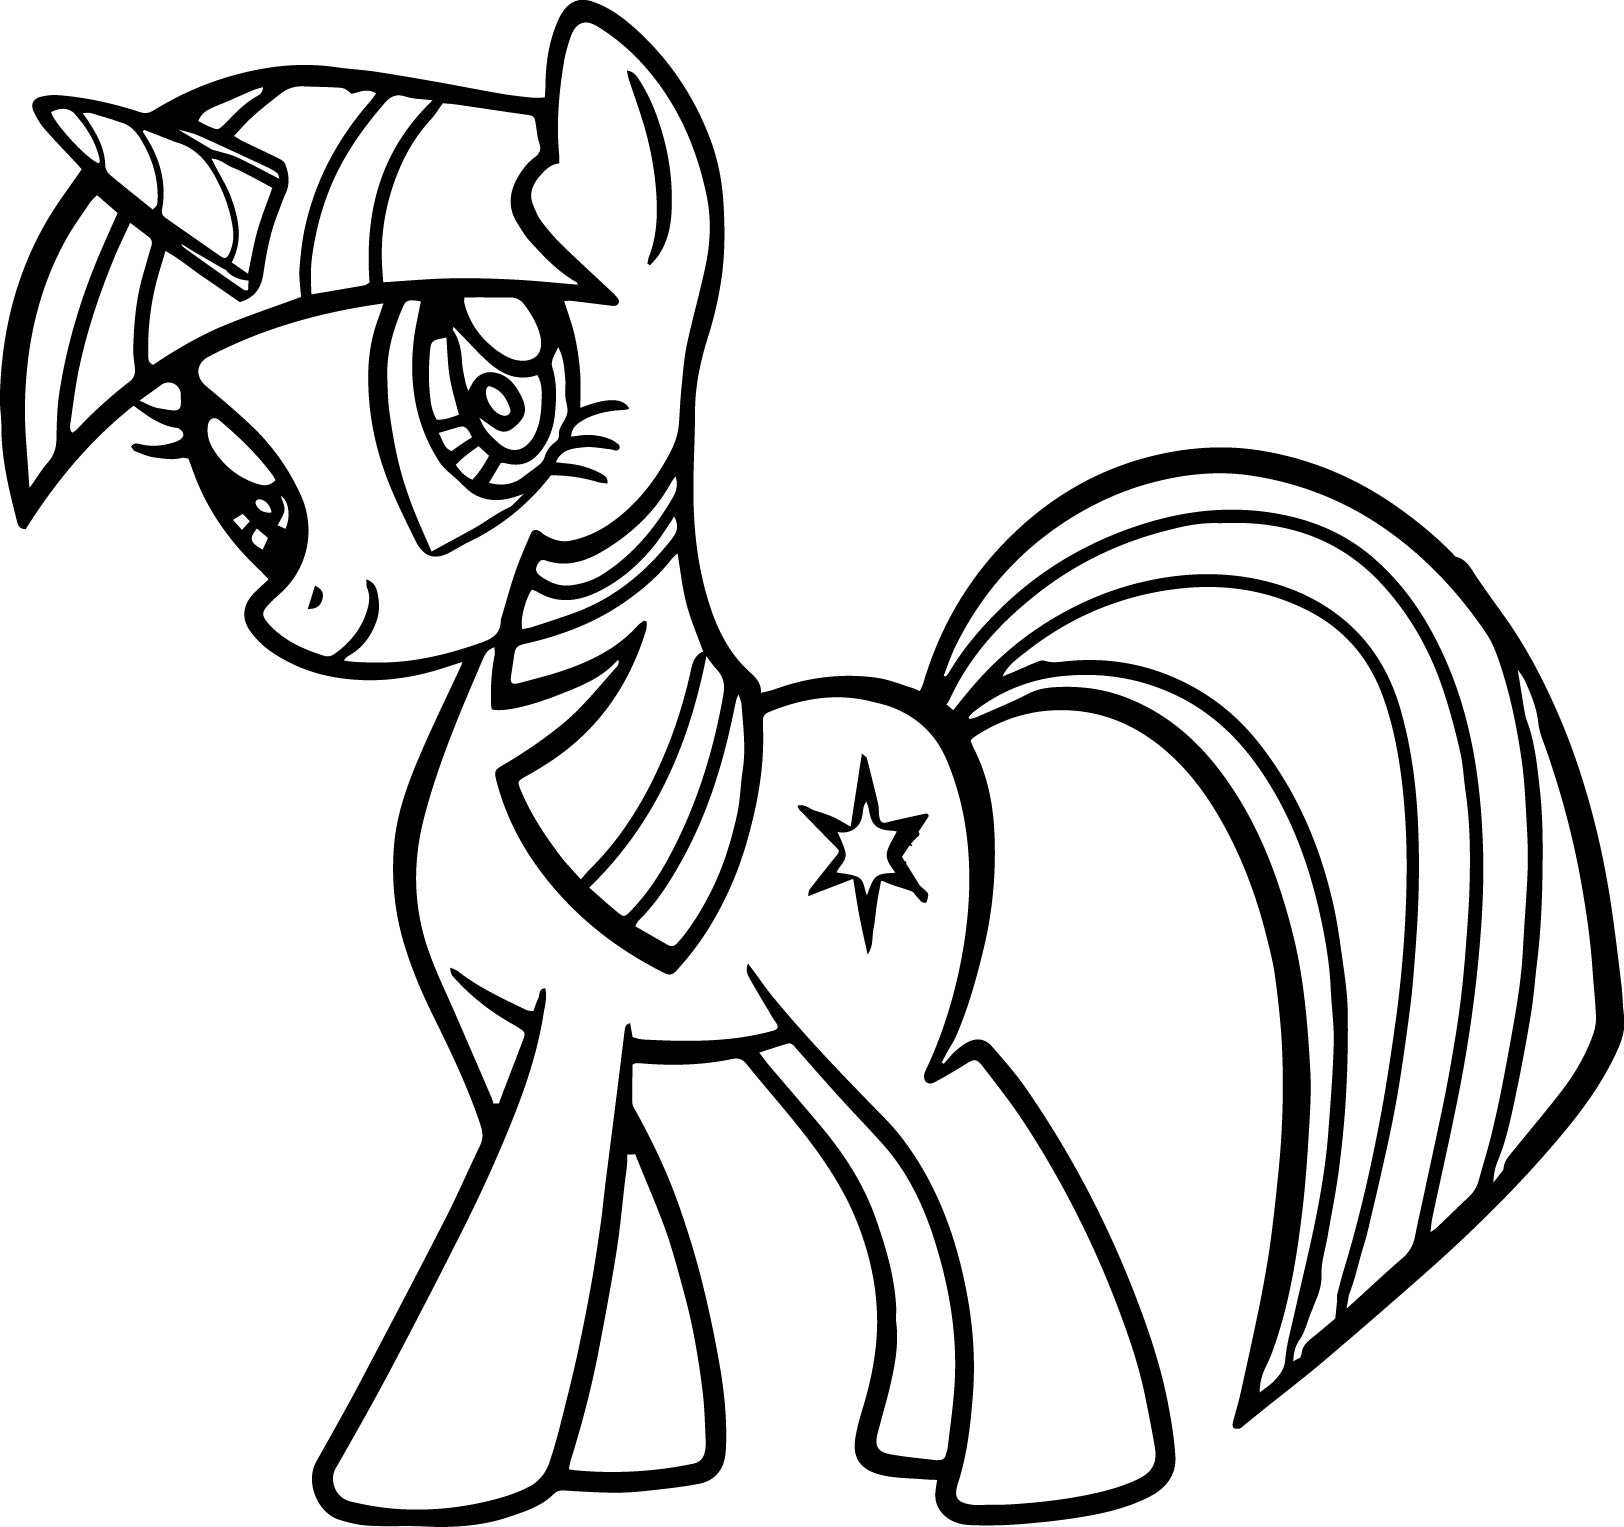 cute my little pony coloring page - Twilight Sparkle Coloring Pages